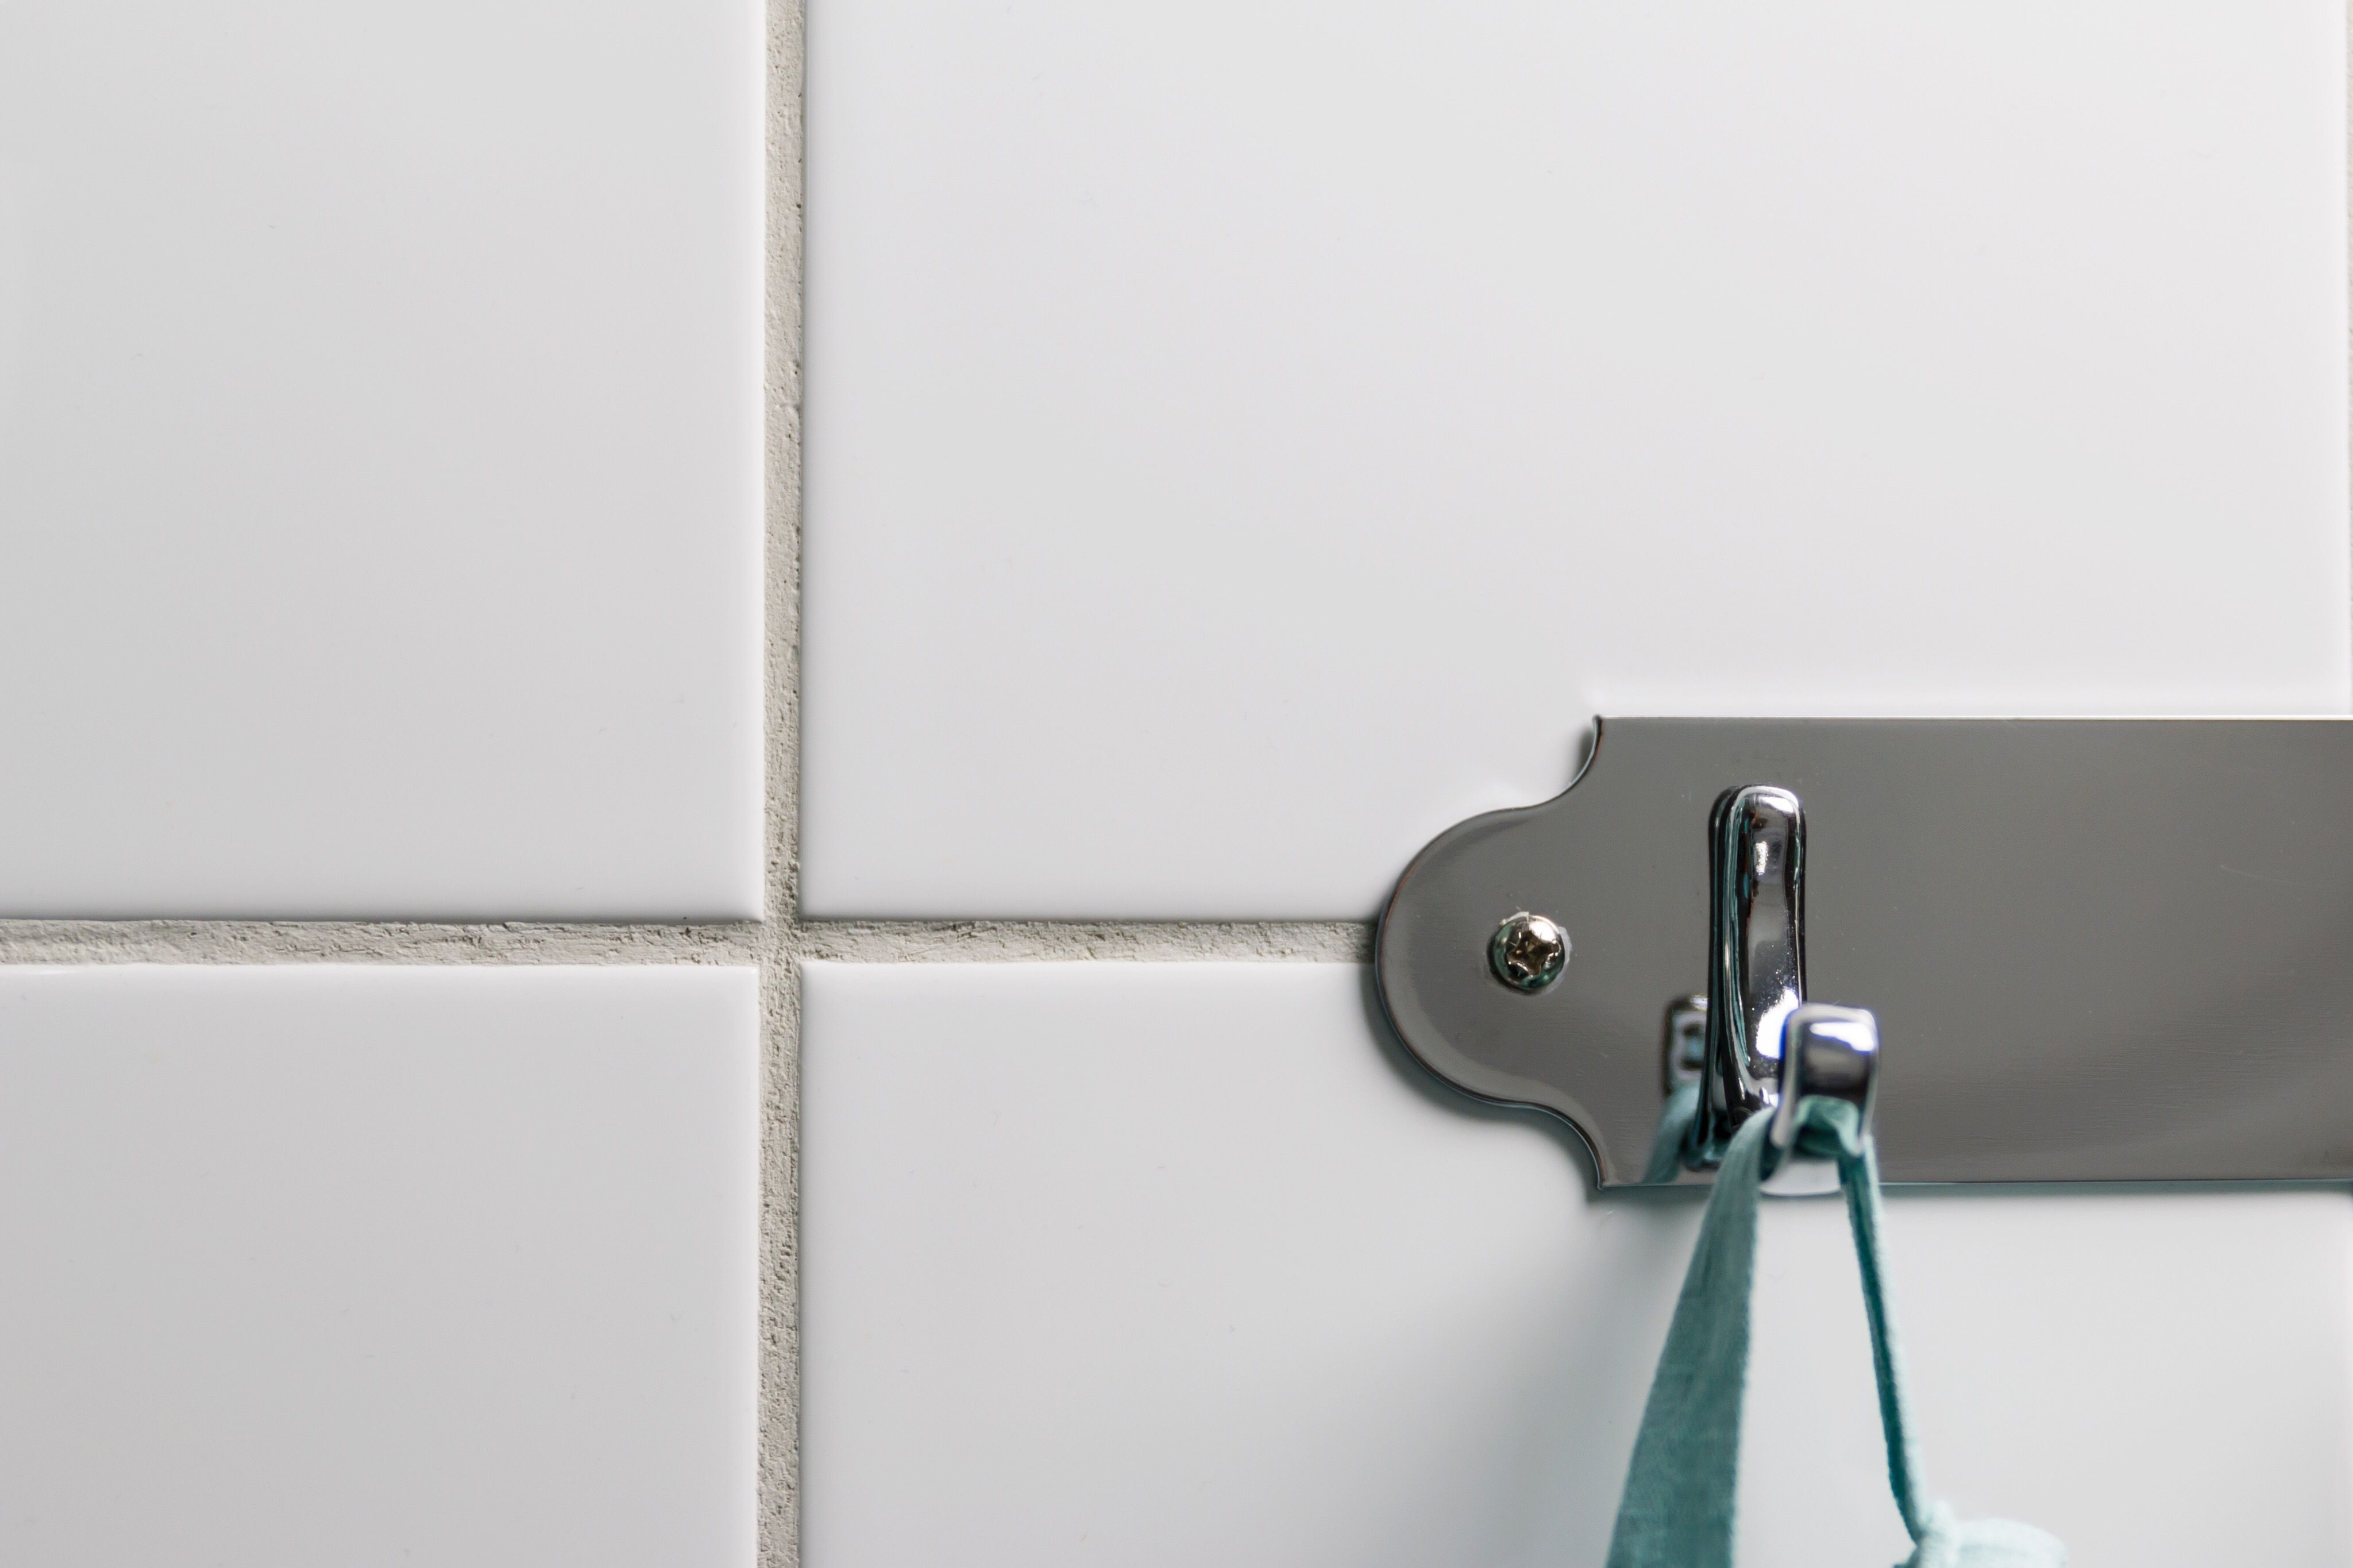 How To Find A Stud Behind Ceramic Tile